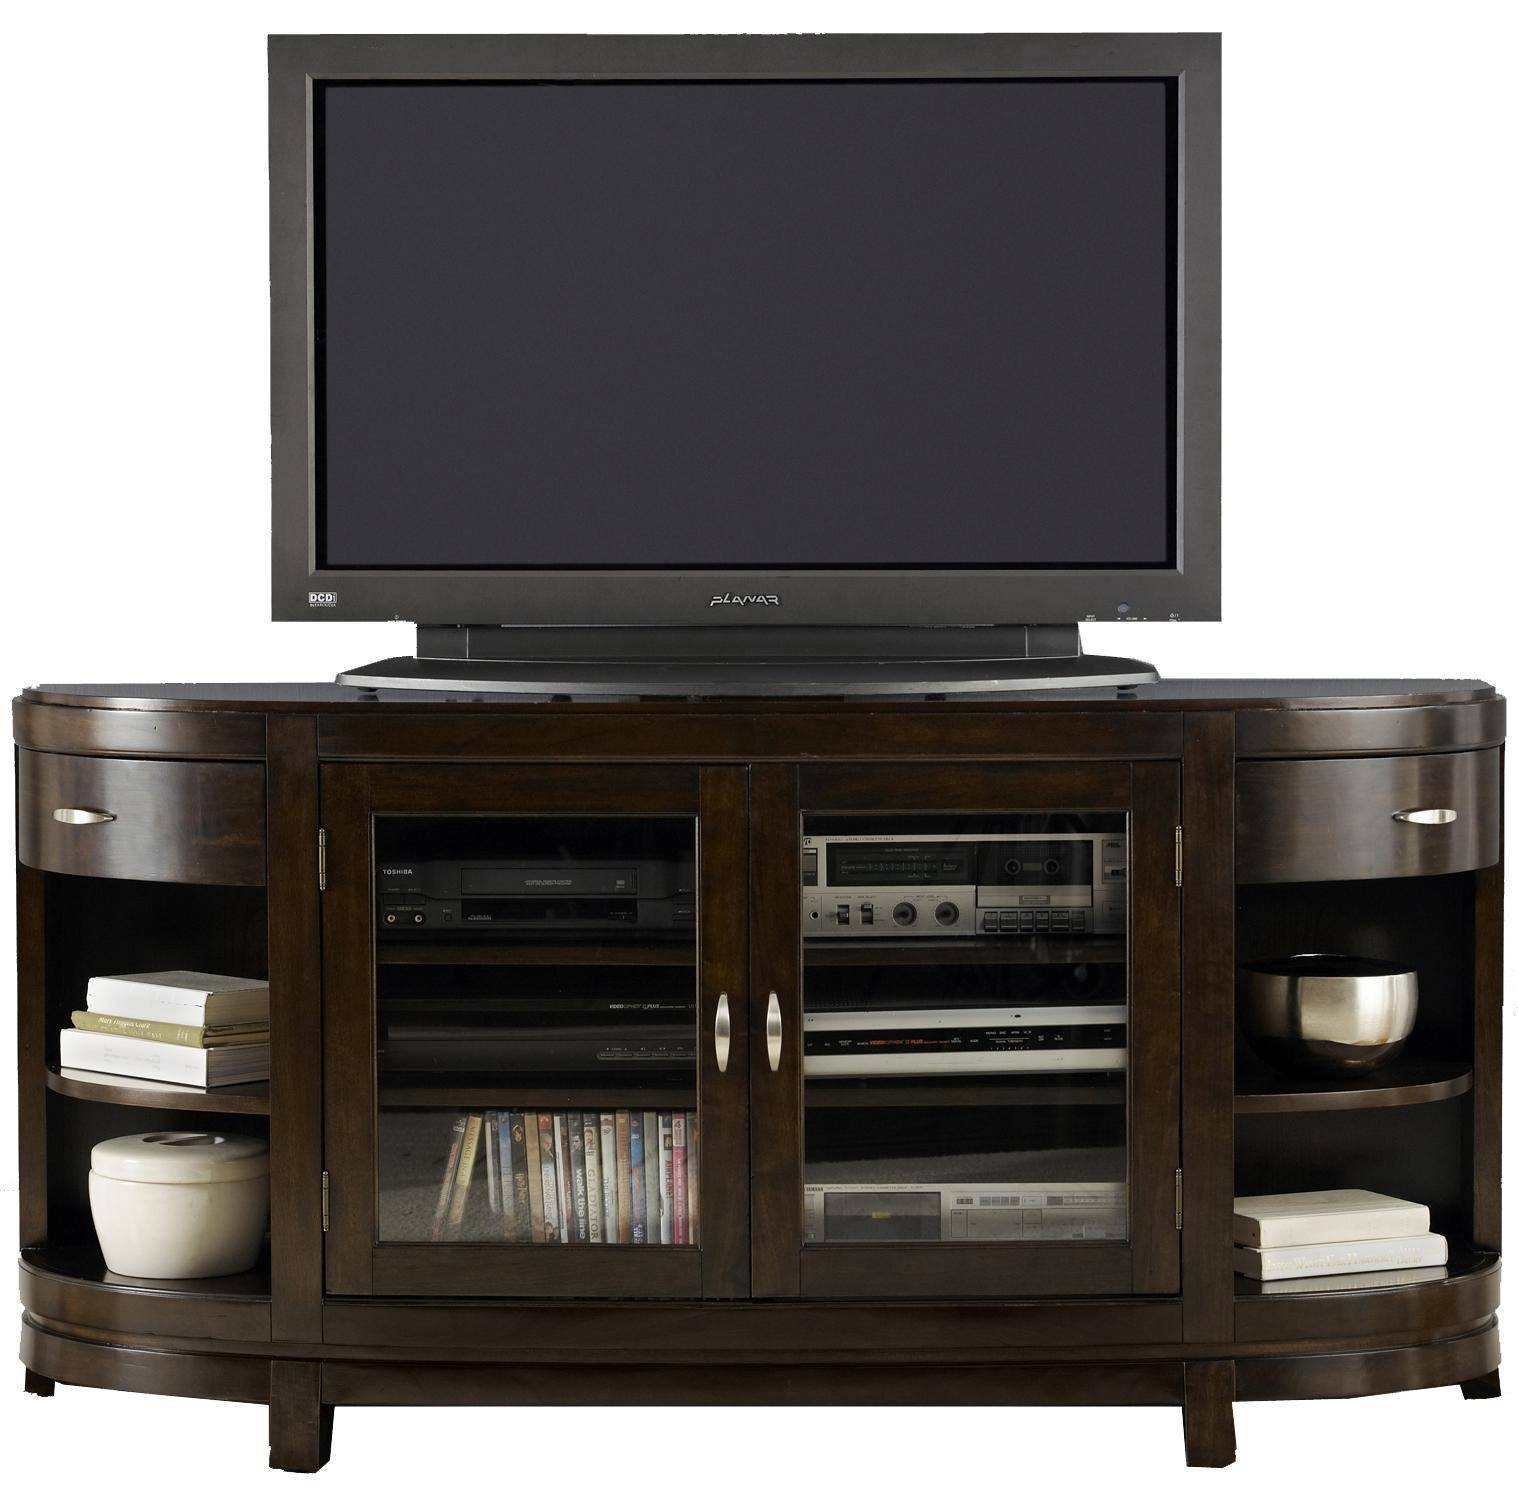 Two Door Entertainment Tv Stand With Drawers And Shelves Pertaining To Tv Stands With Drawers And Shelves (View 3 of 15)